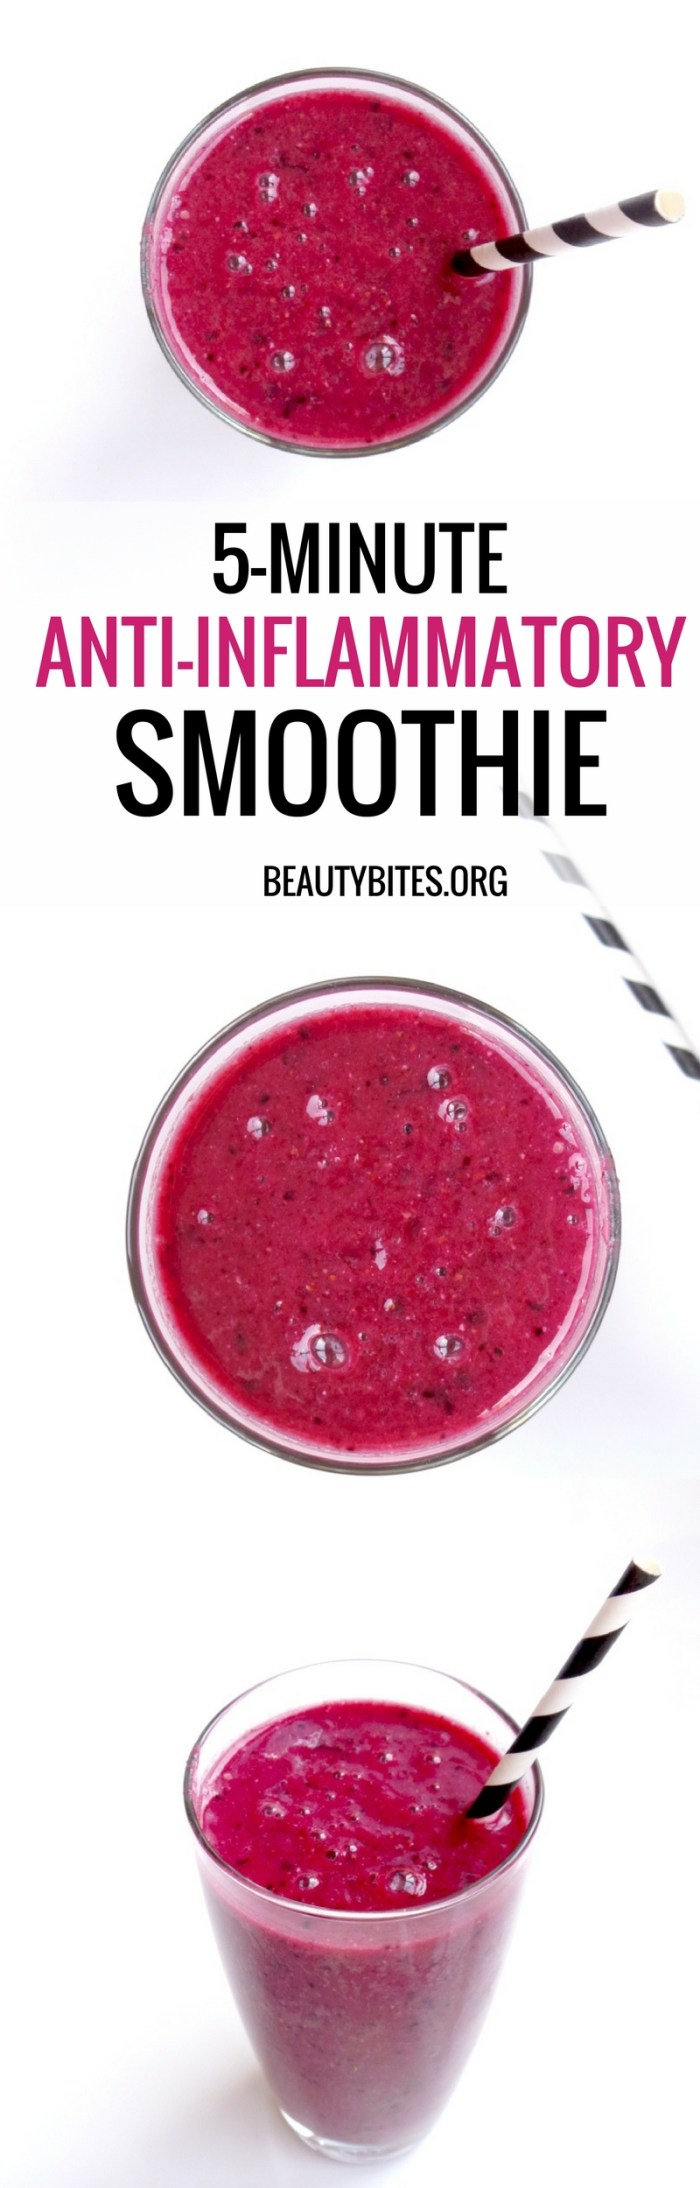 5-minute anti-inflammatory smoothie. Start your mornings with this simple anti-inflammatory recipe or have it as a healthy snack later during the day to easily add more antioxidants to your diet! This recipe is also vegan, paleo and gluten-free! #healthyrecipe #smoothie